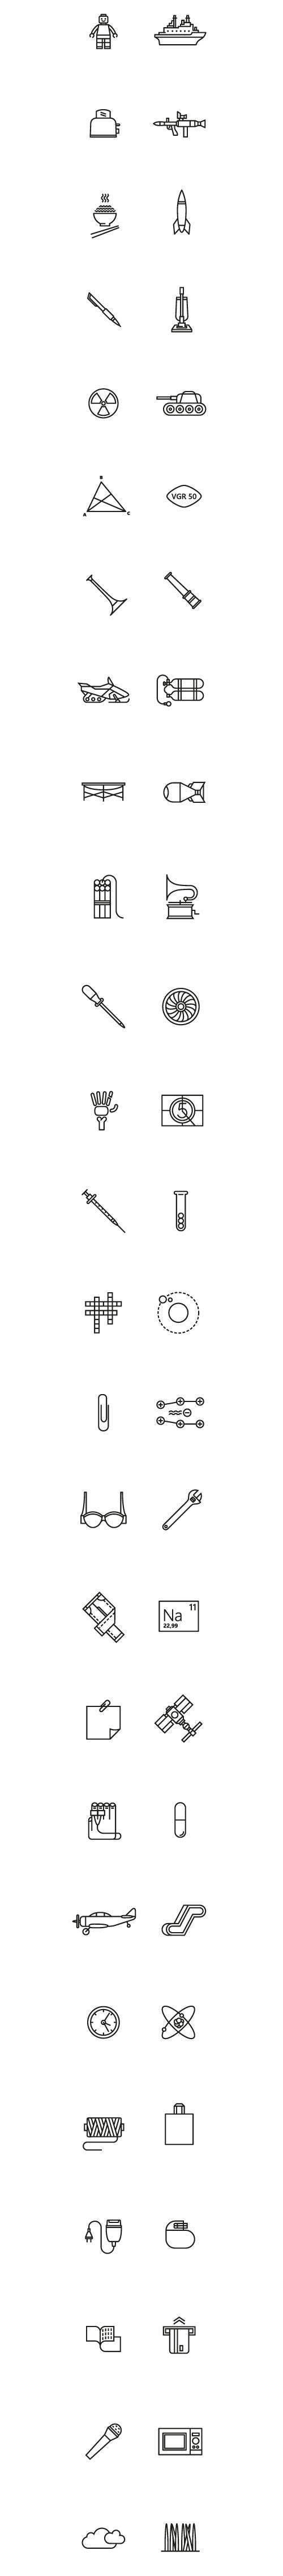 Pictograms for Esquire Russia by Ooli Mos, via Behance